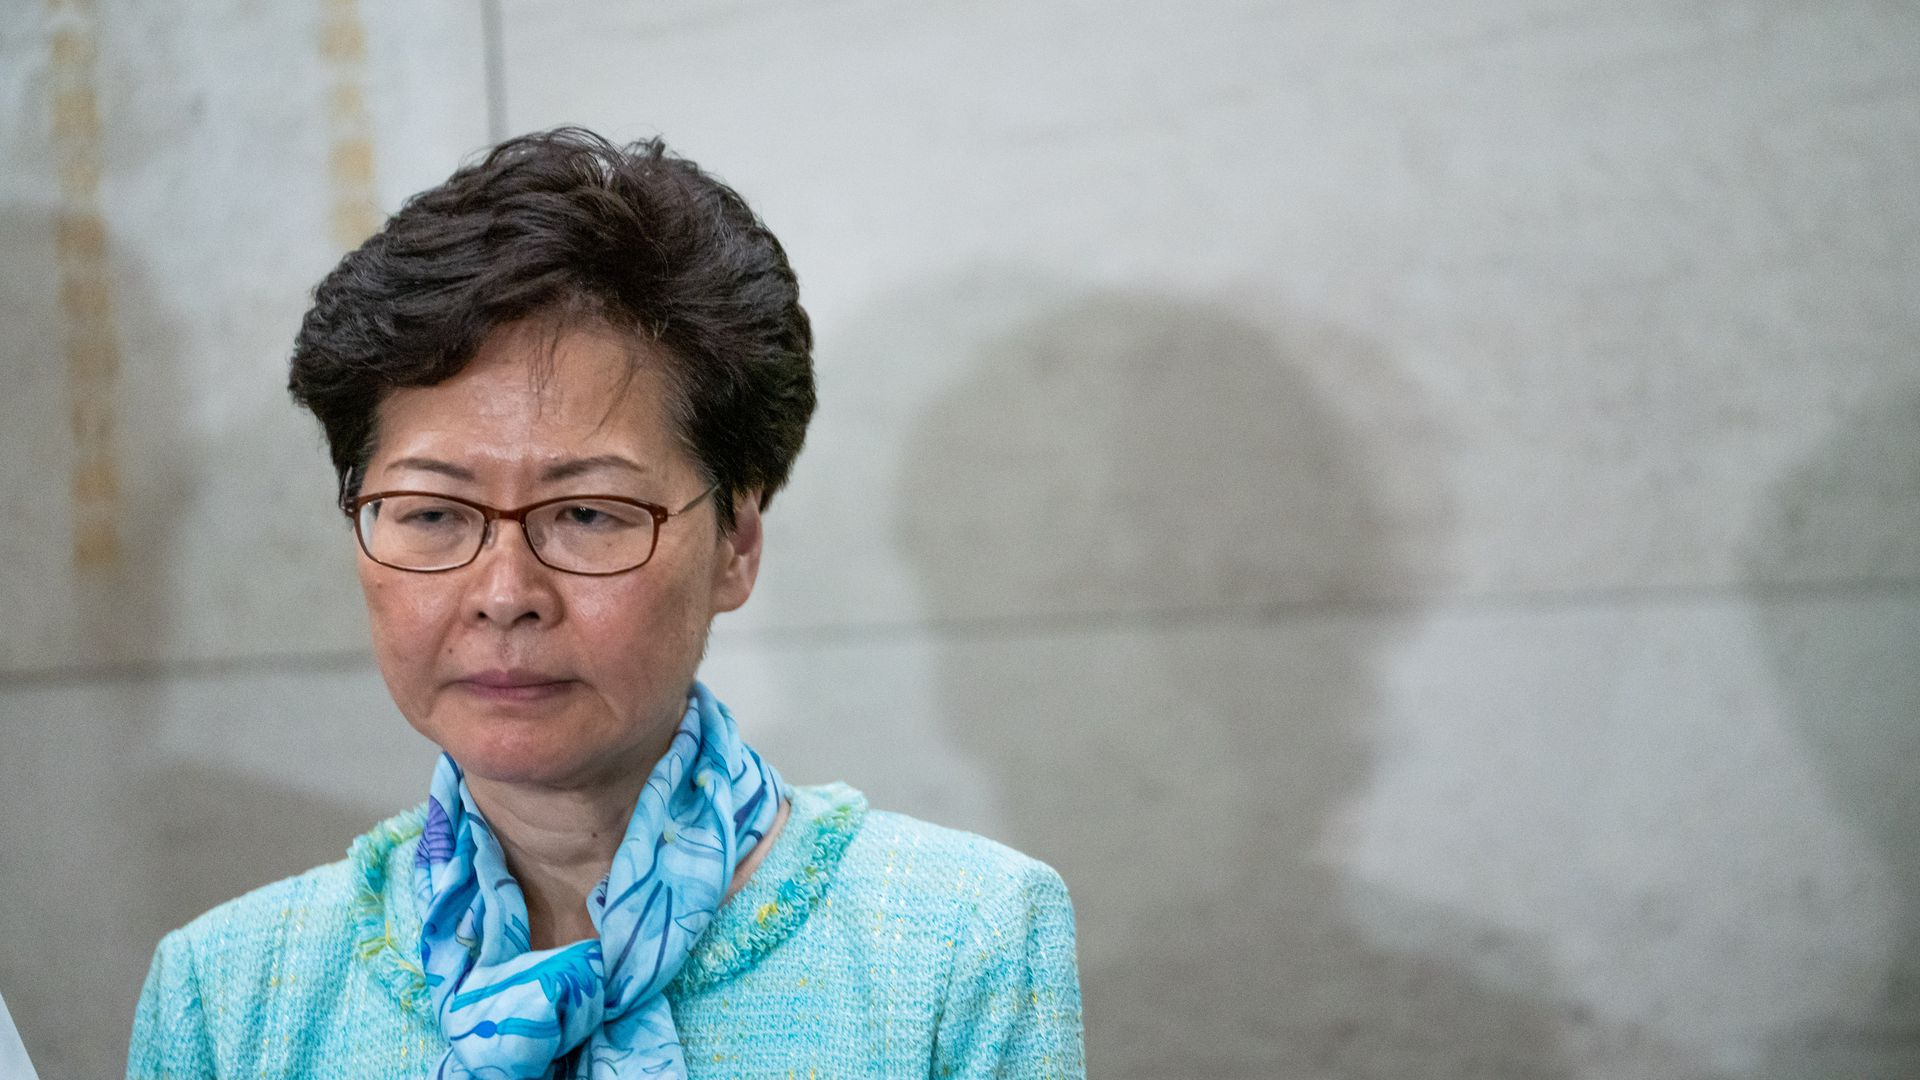 Carrie Lam, Hong Kong's chief executive, speaks during a news conference on July 2